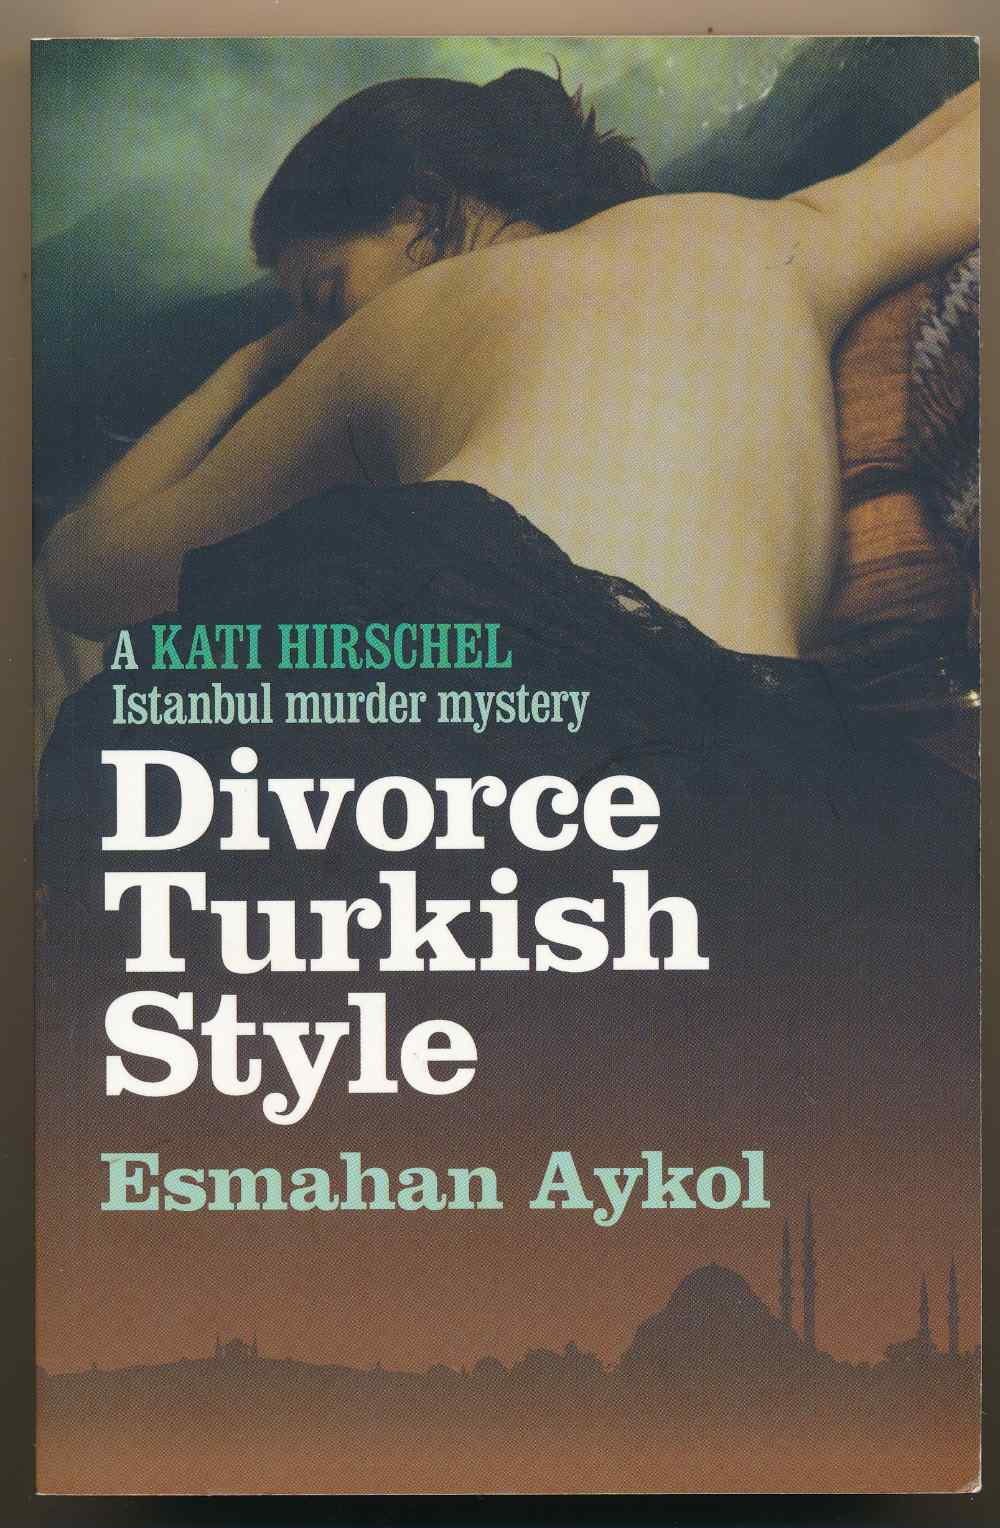 Divorce Turkish style : a Kati Hirschel mystery